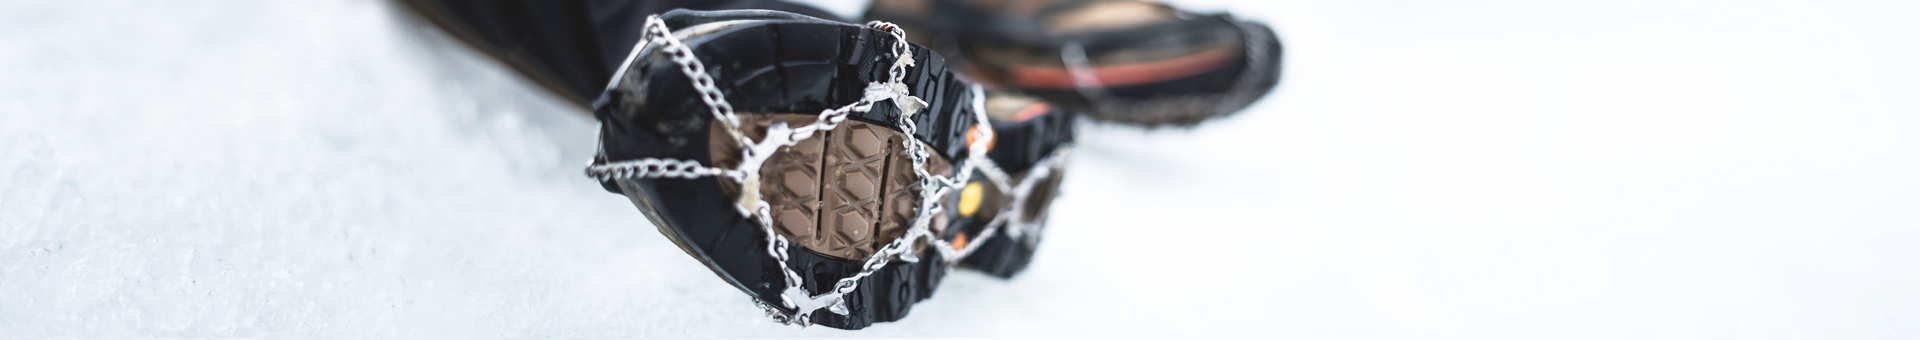 Walking Anti-Slip Crampons